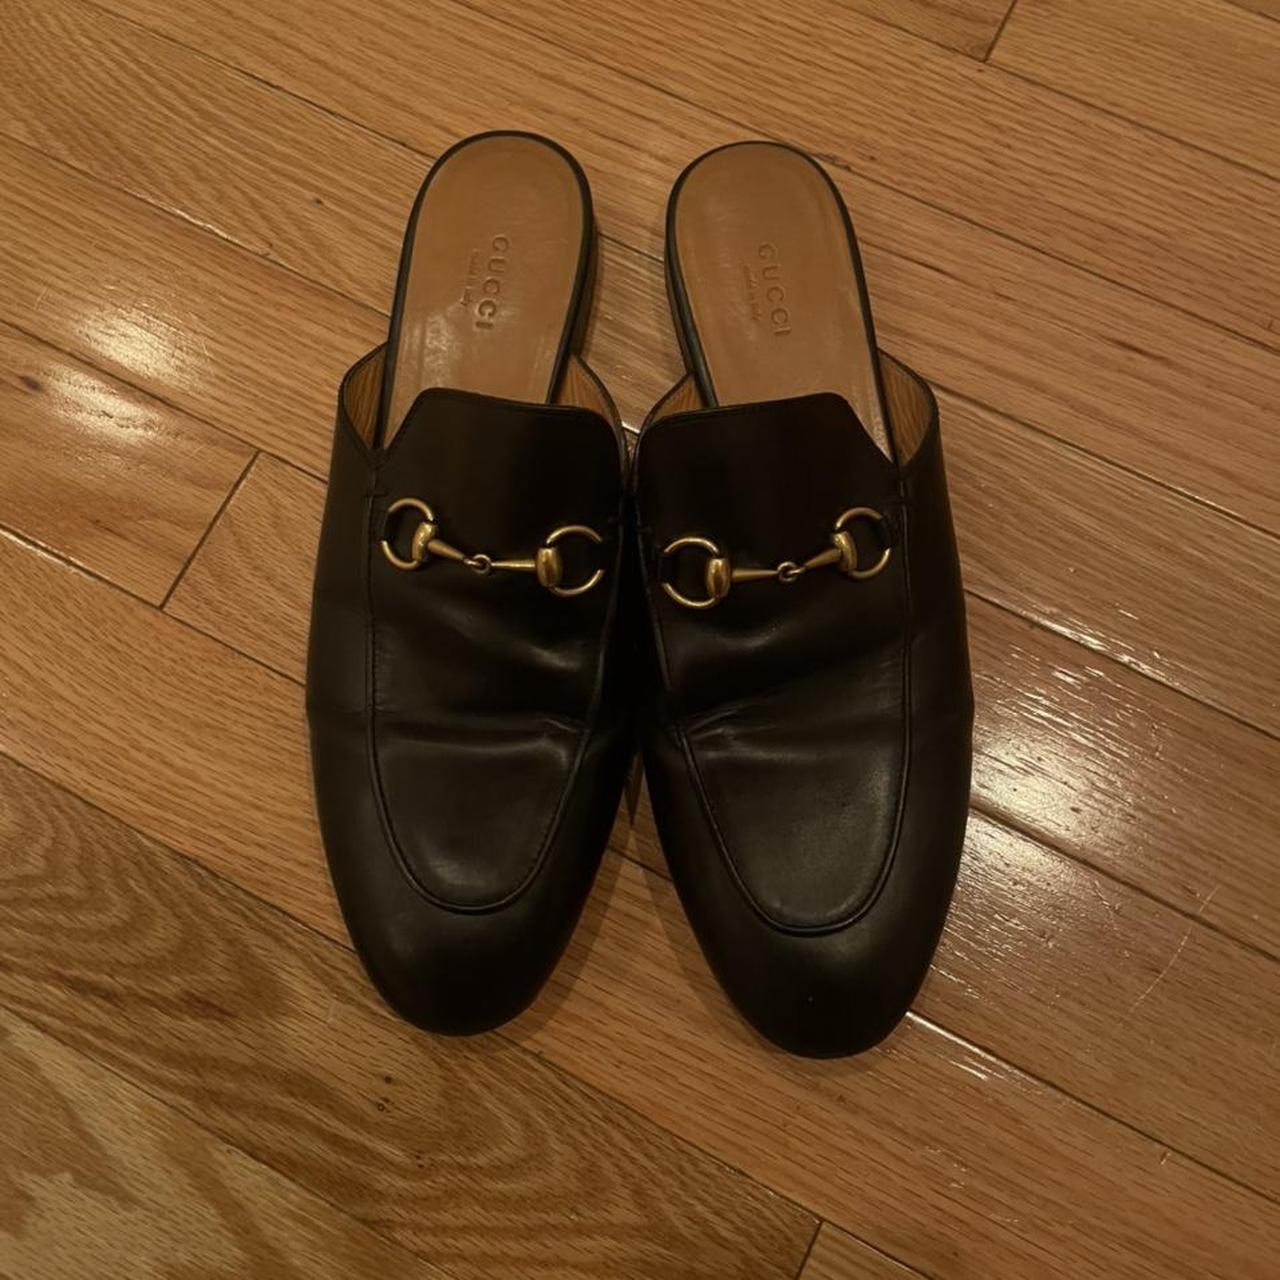 Product Image 1 - Gucci Princeton Loafers - in